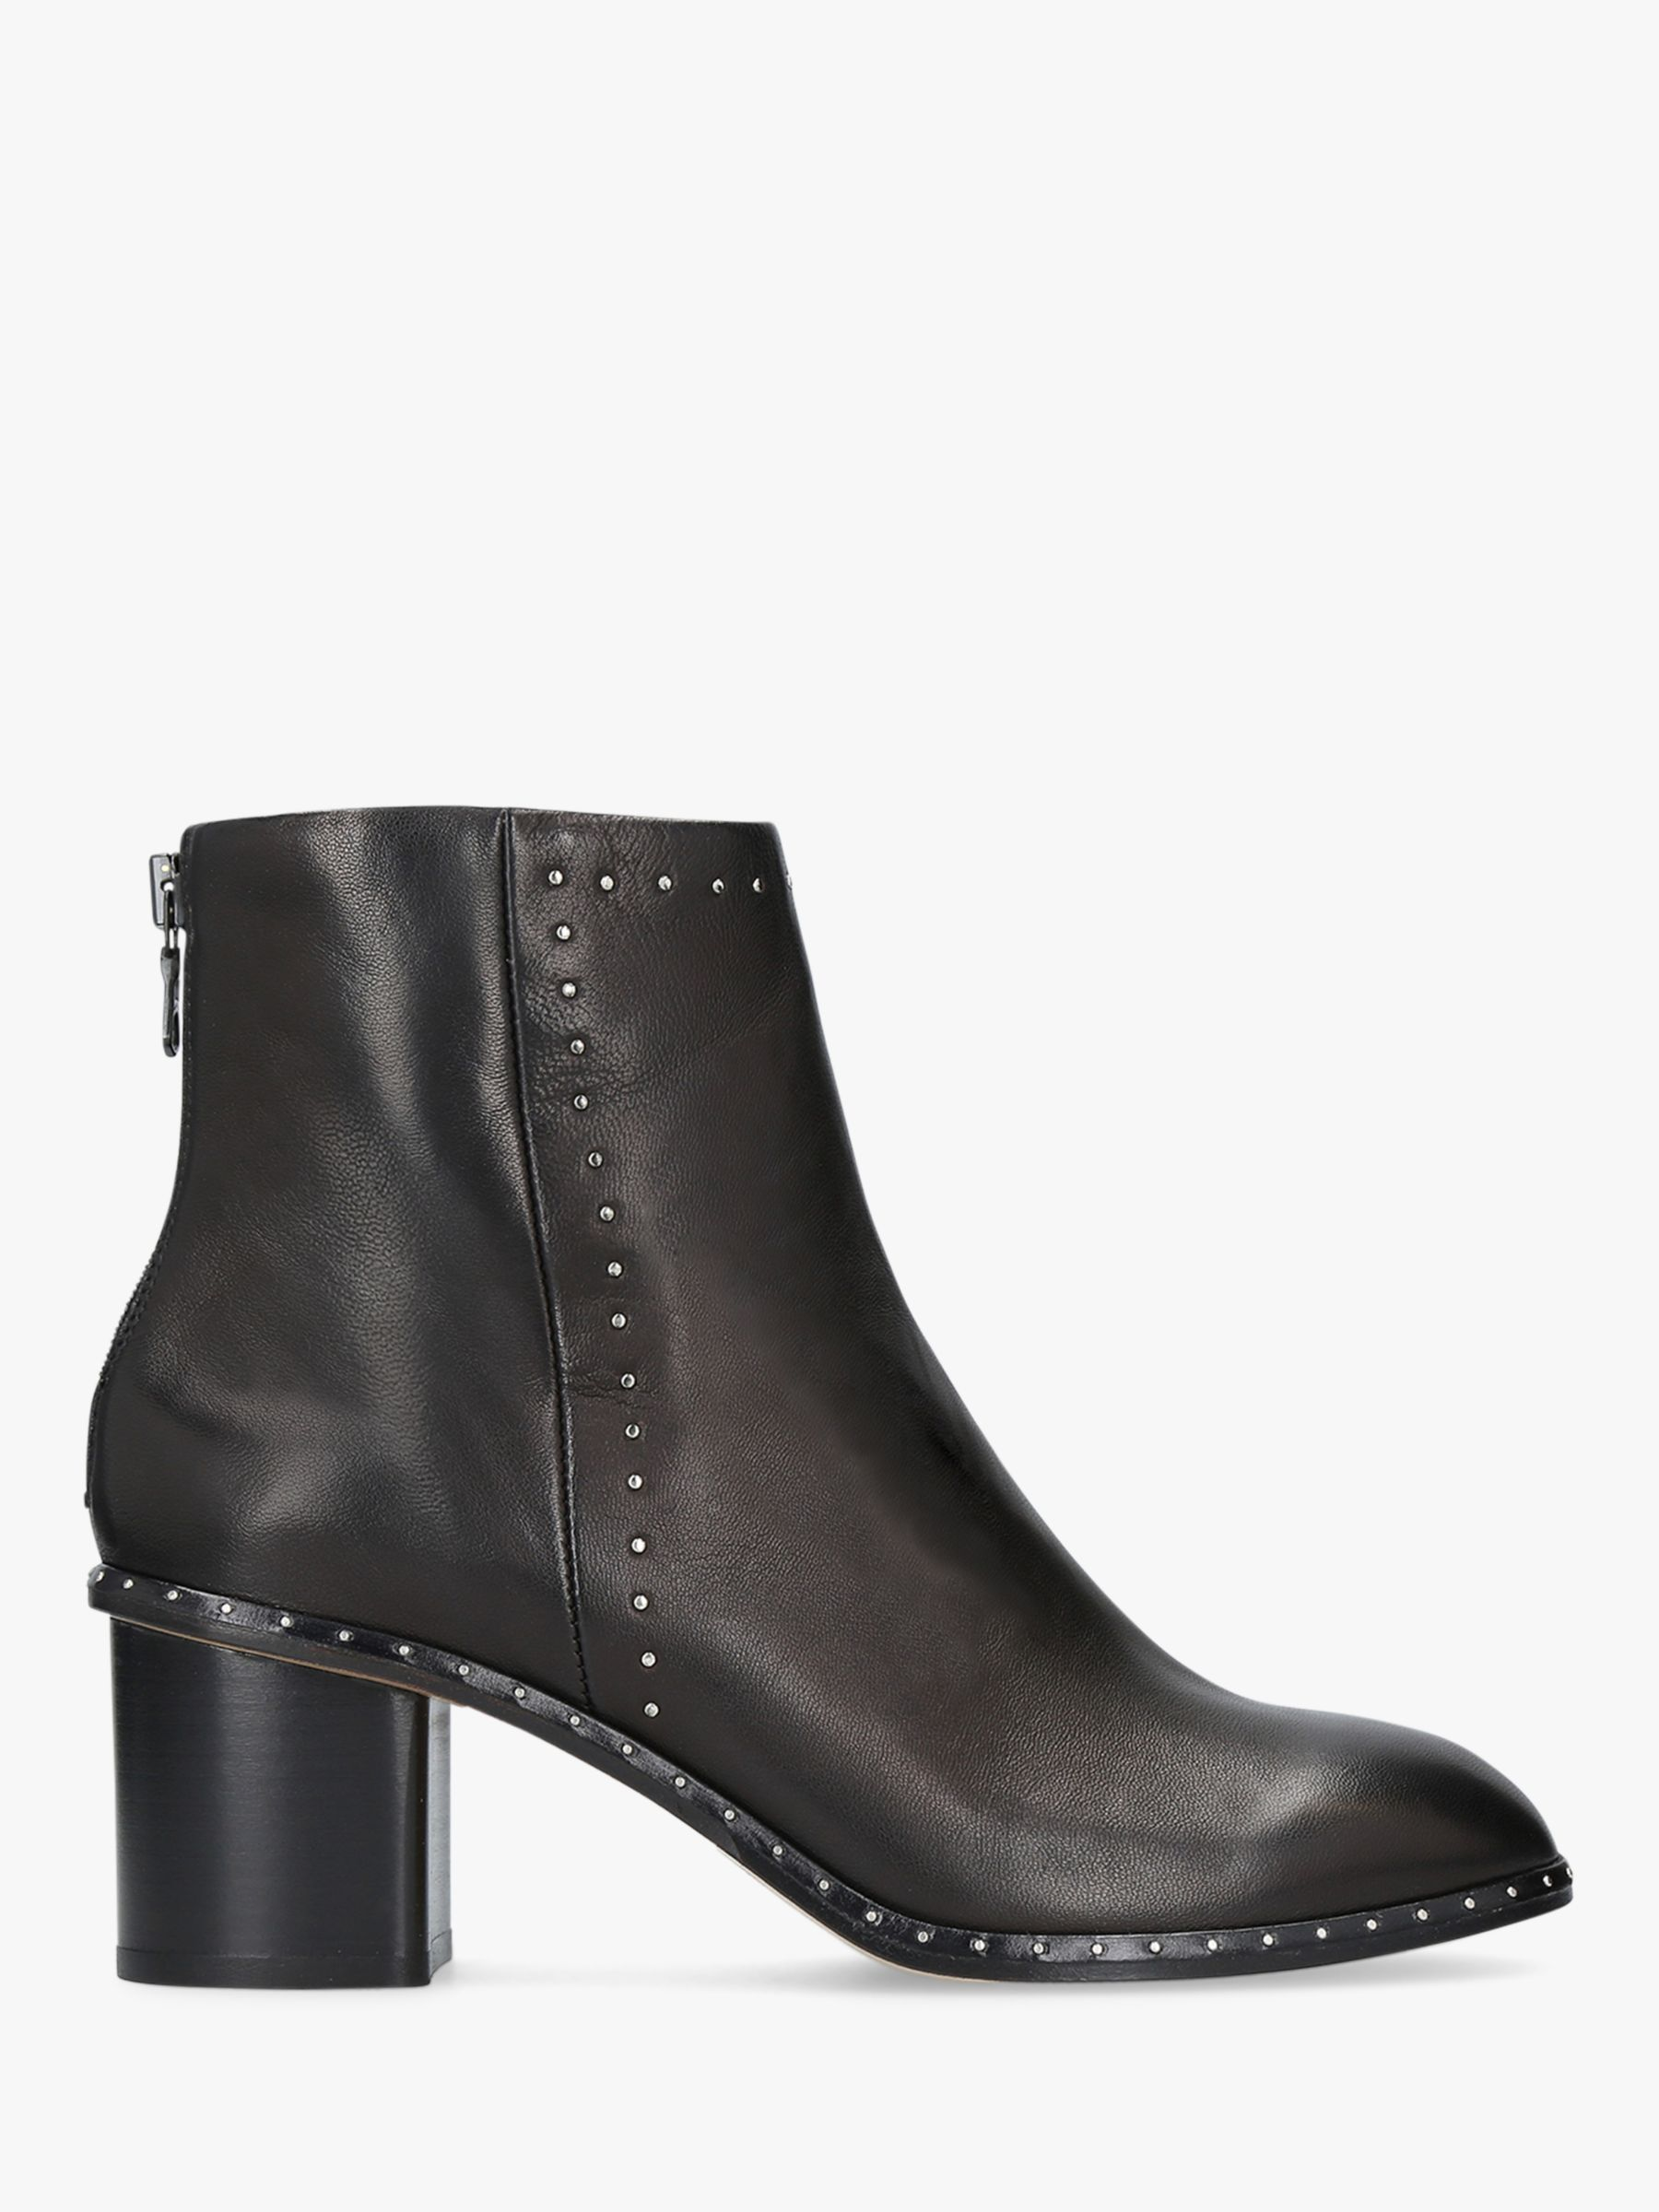 6e2fe5302a5 rag & bone Willow Leather Studded Ankle Boots, Black